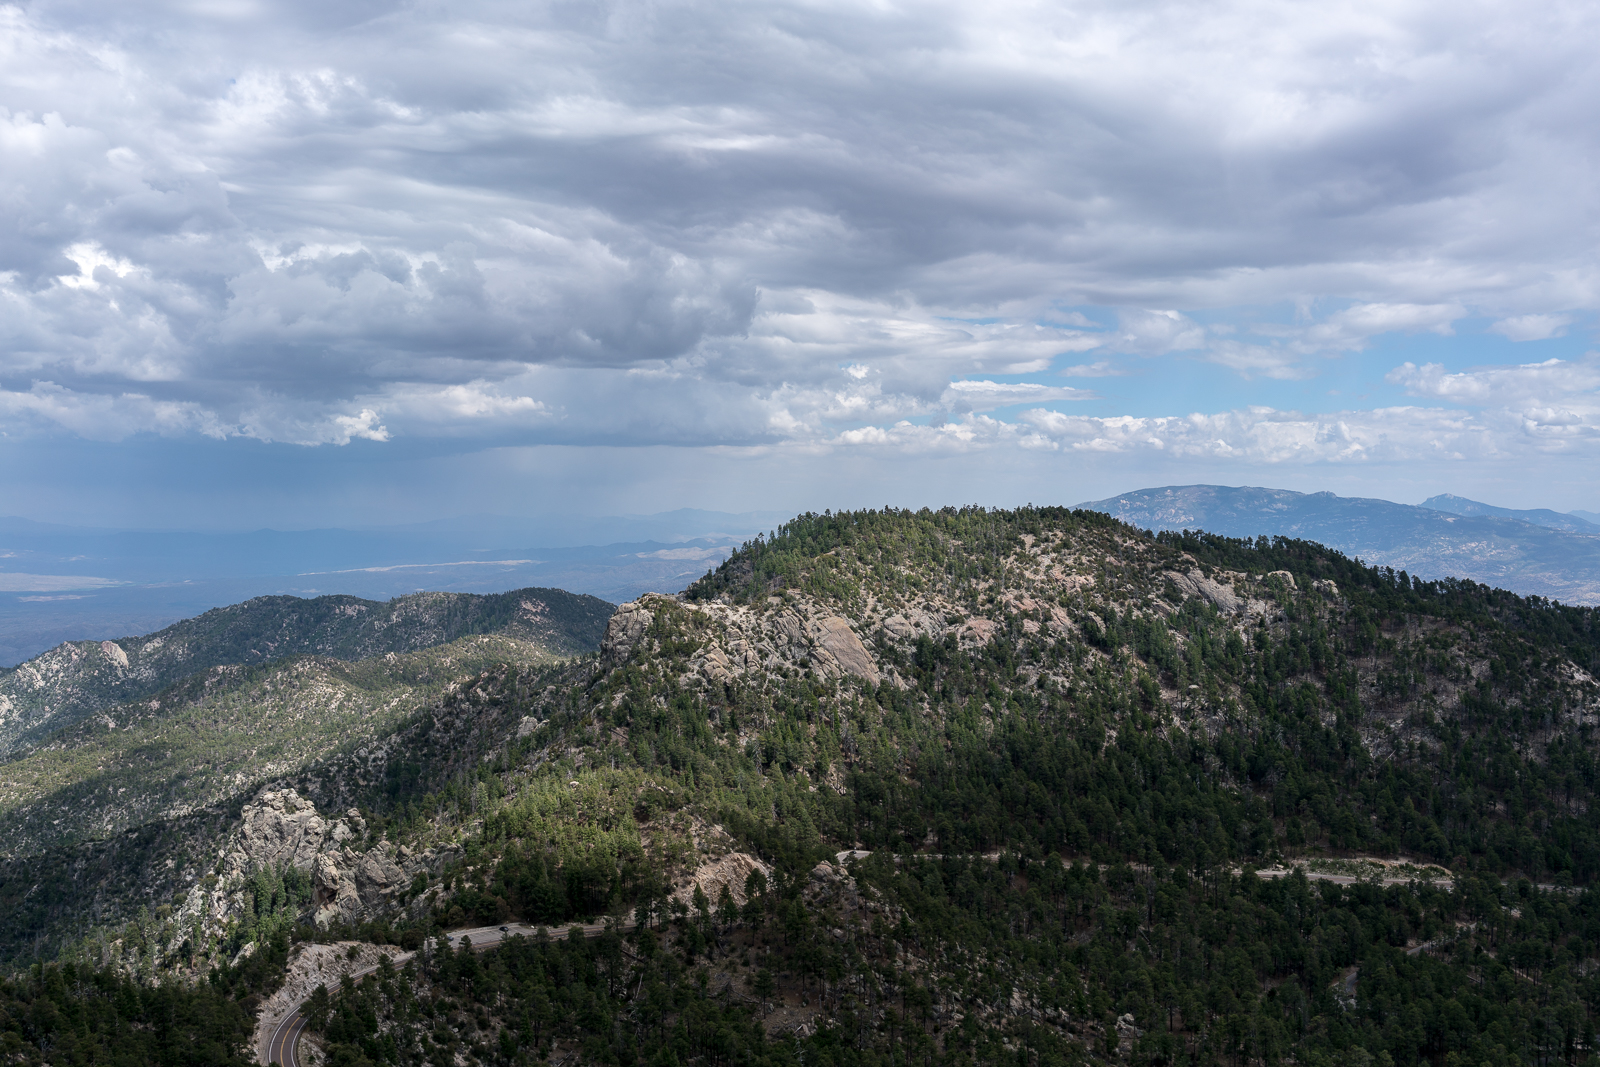 From Barnum Rock: Green Mountain - center, Guthrie Mountain - left, San Pedro Vista - lower left, Mica Mountain in the Rincon Mountains - right. May 2016.